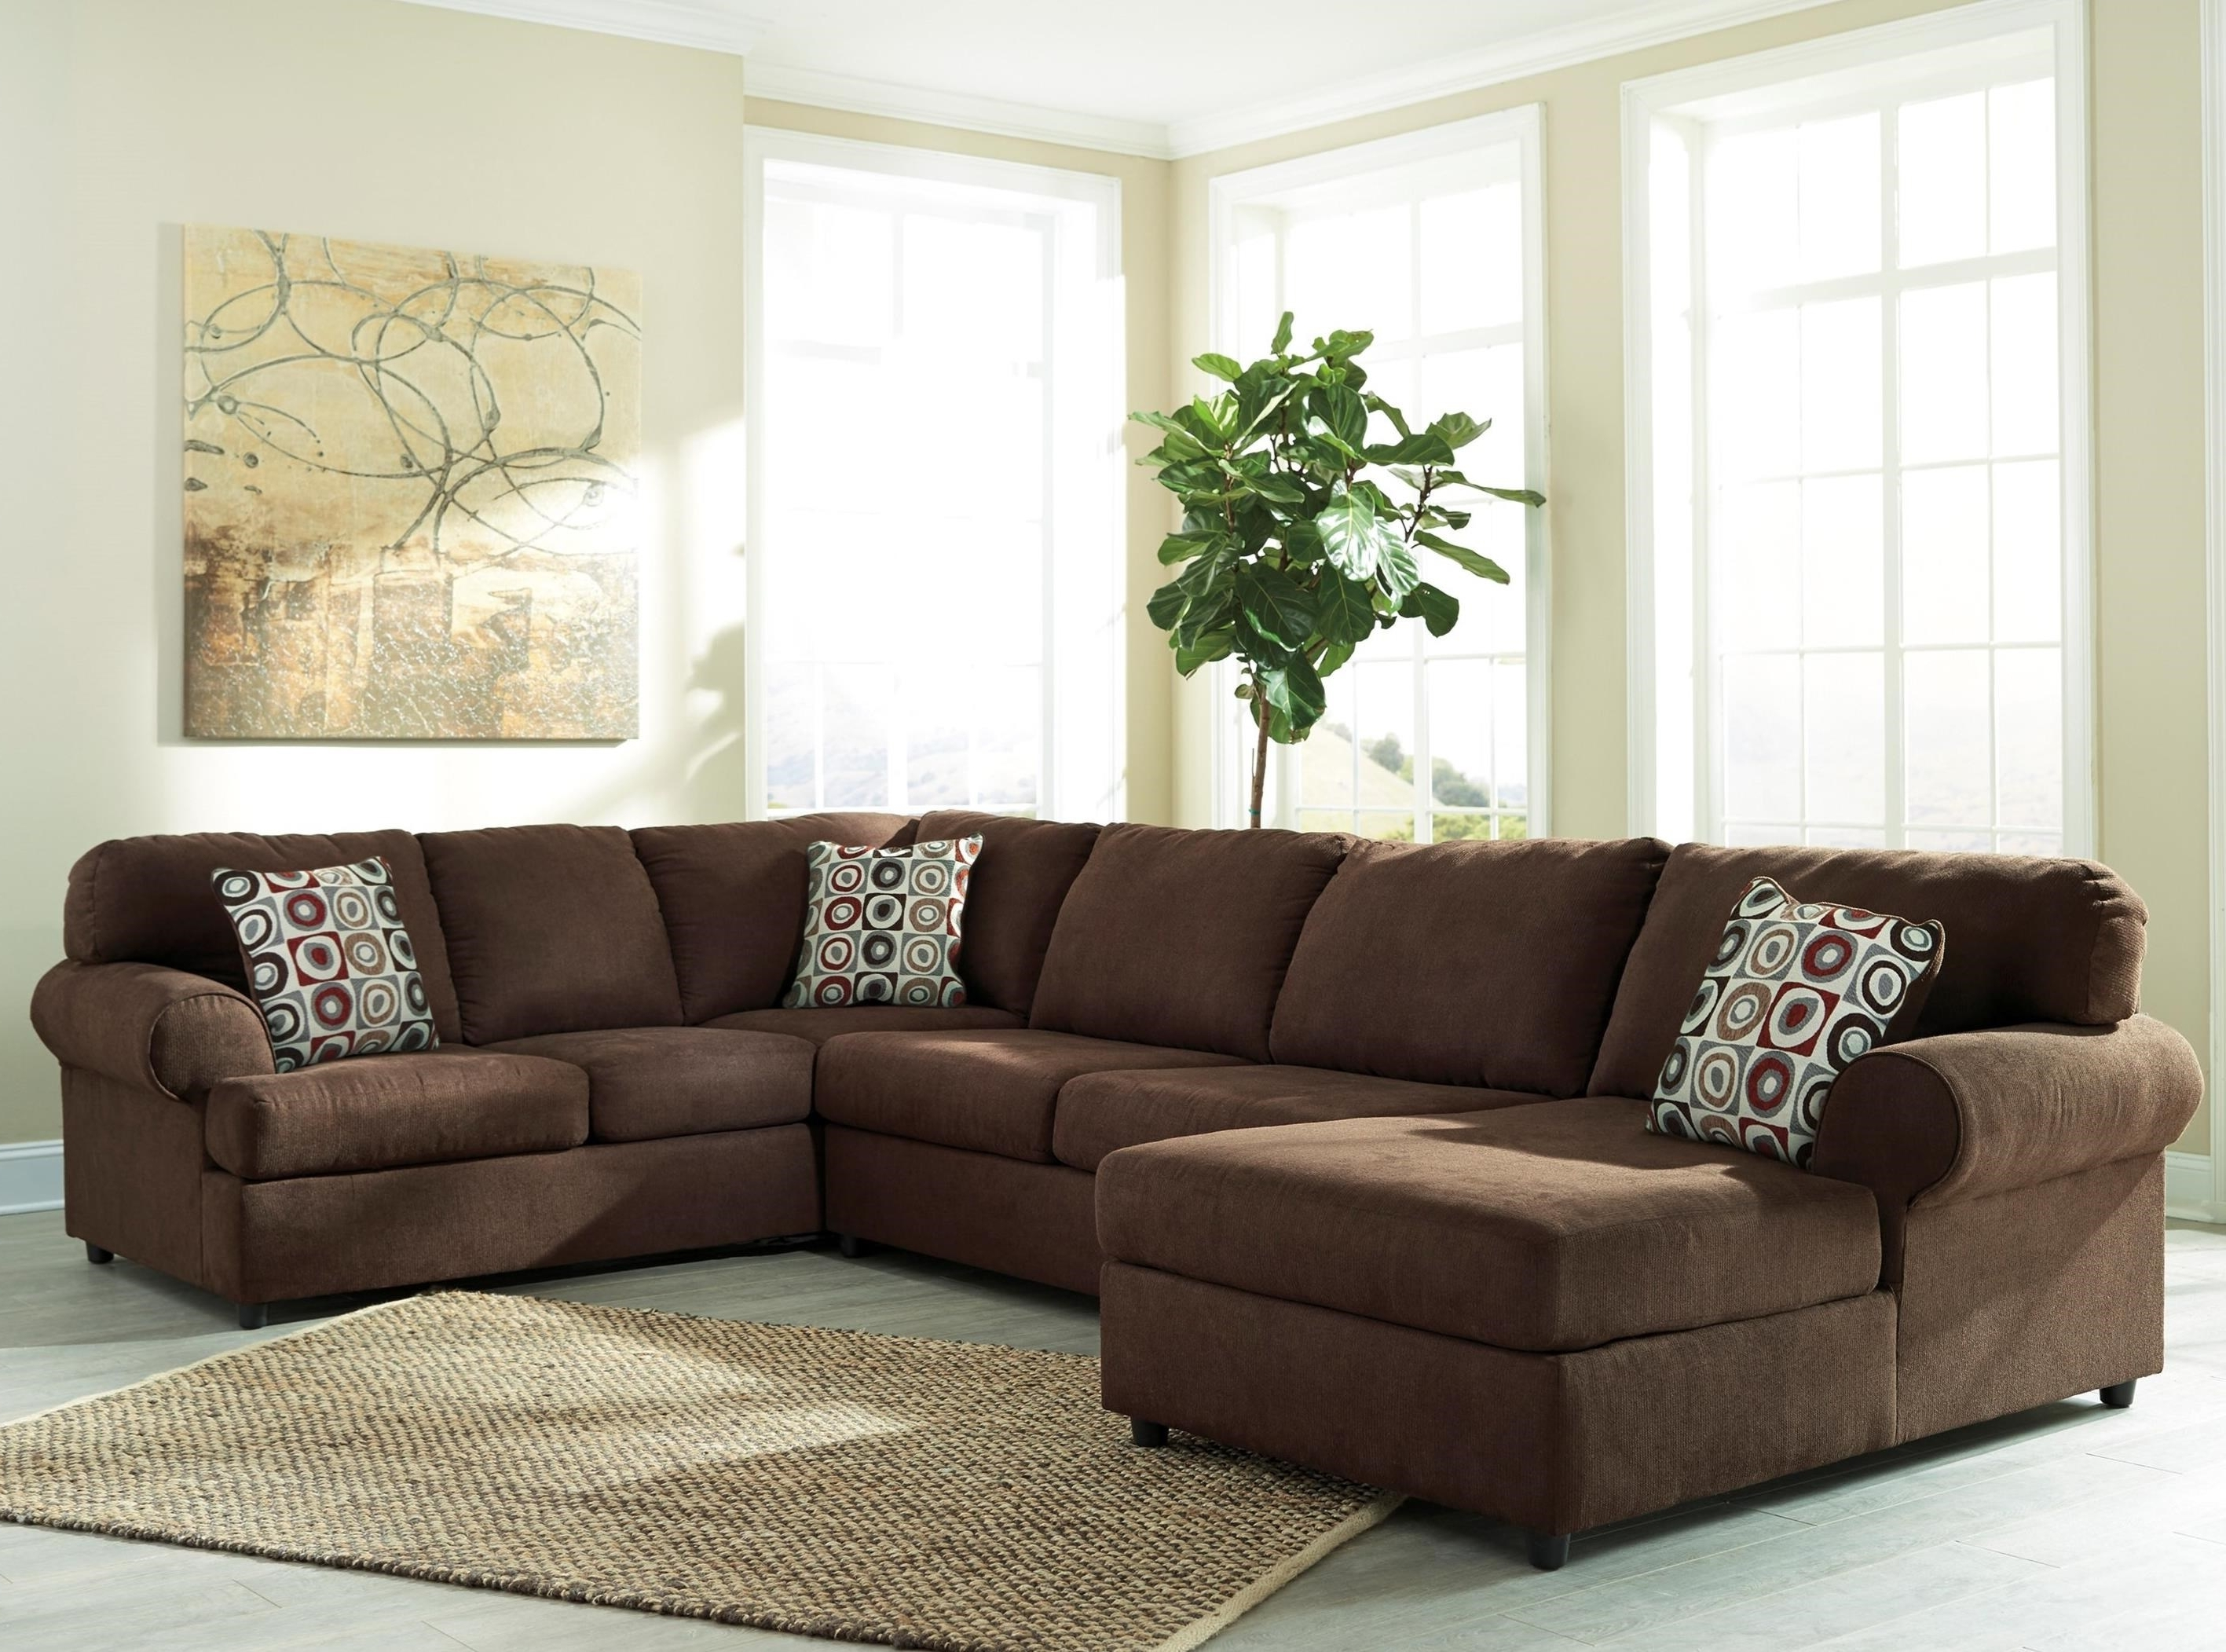 Well Liked Signature Designashley Jayceon 3 Piece Sectional With Left Inside 3 Piece Sectional Sofas With Chaise (View 5 of 15)